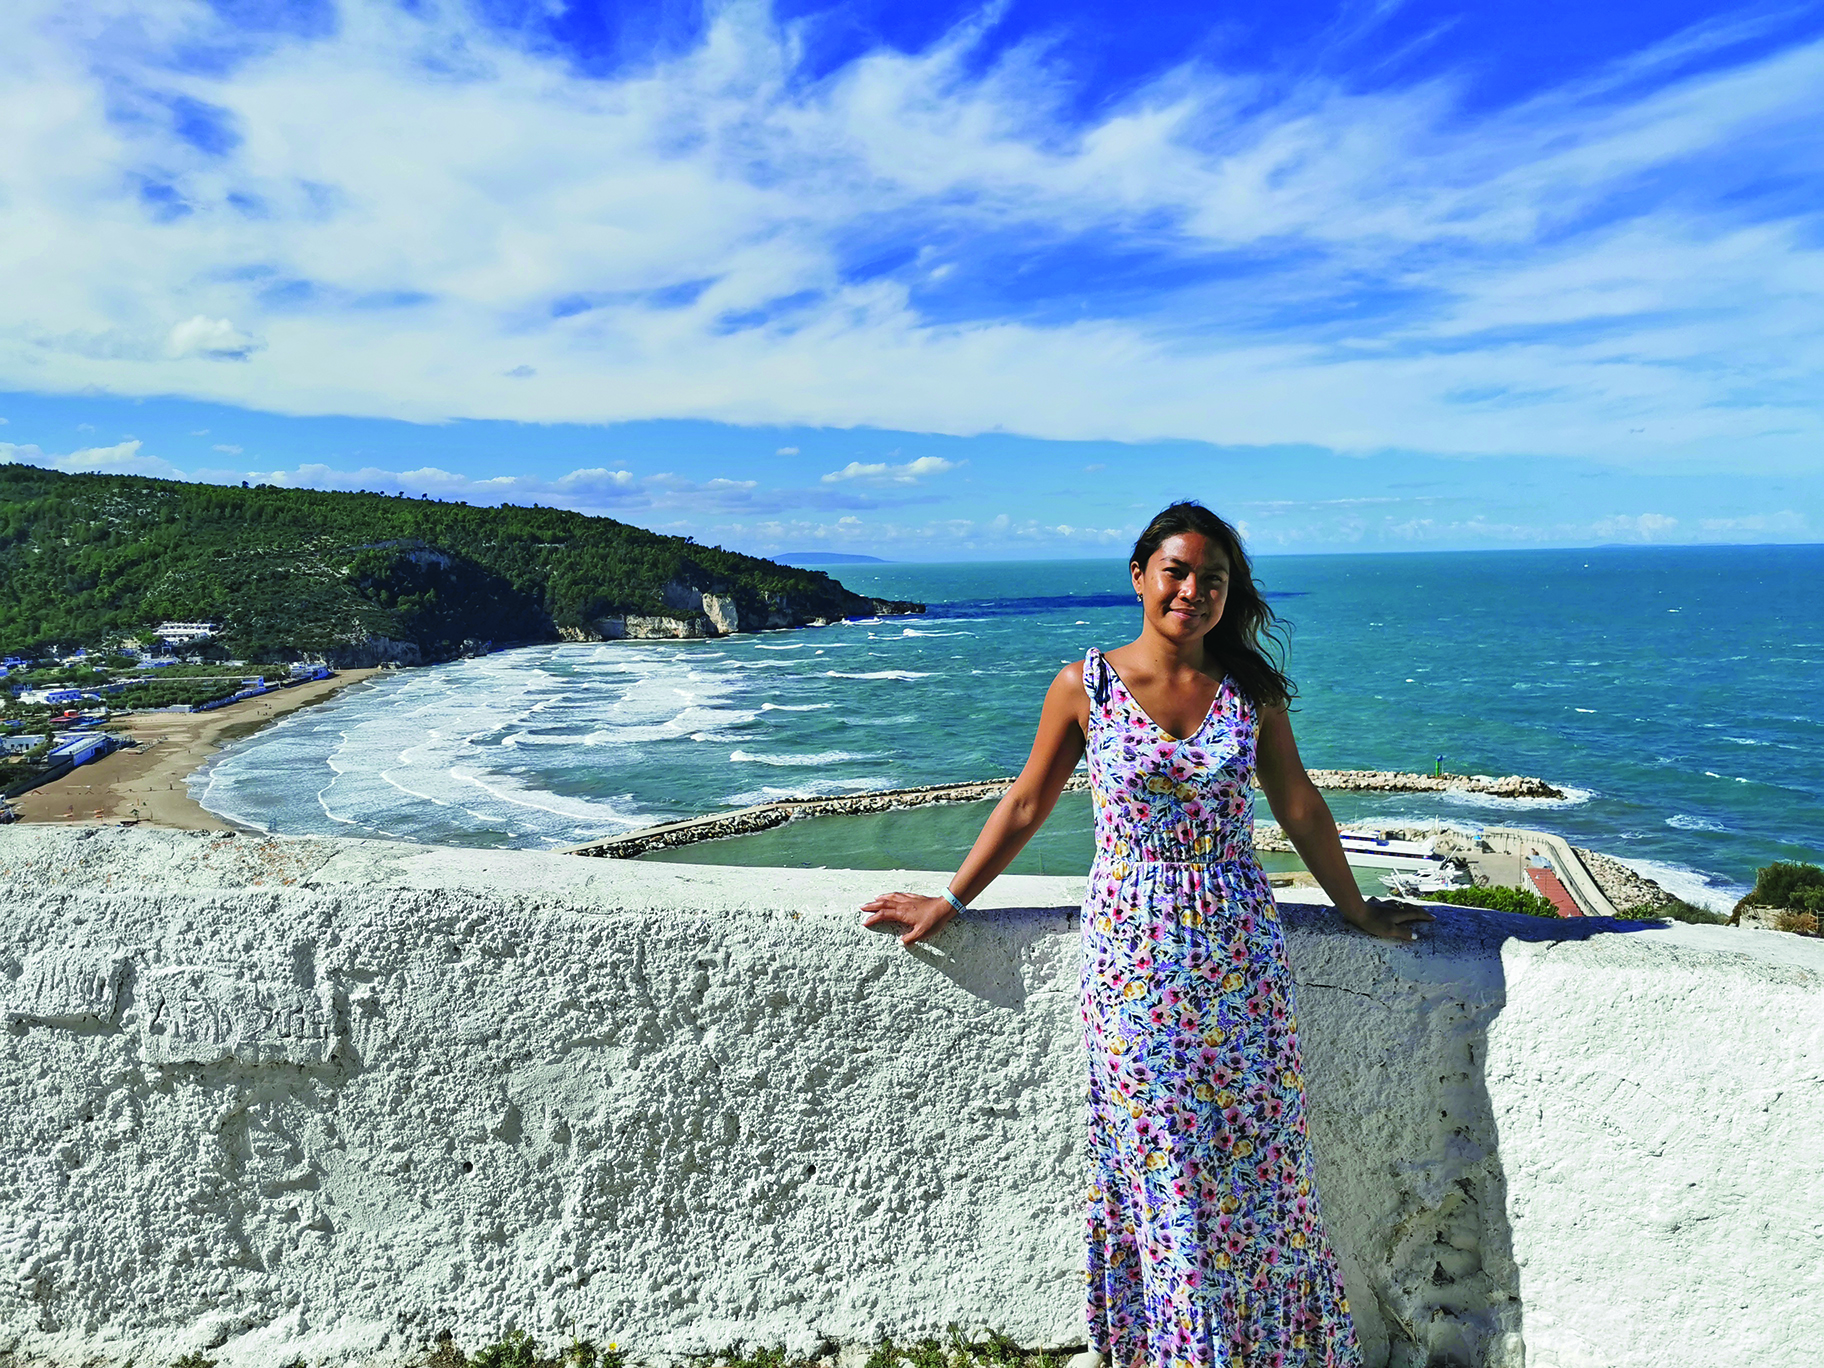 Writer Mary Ann in Peschici, which overlooks the Adriatic Sea